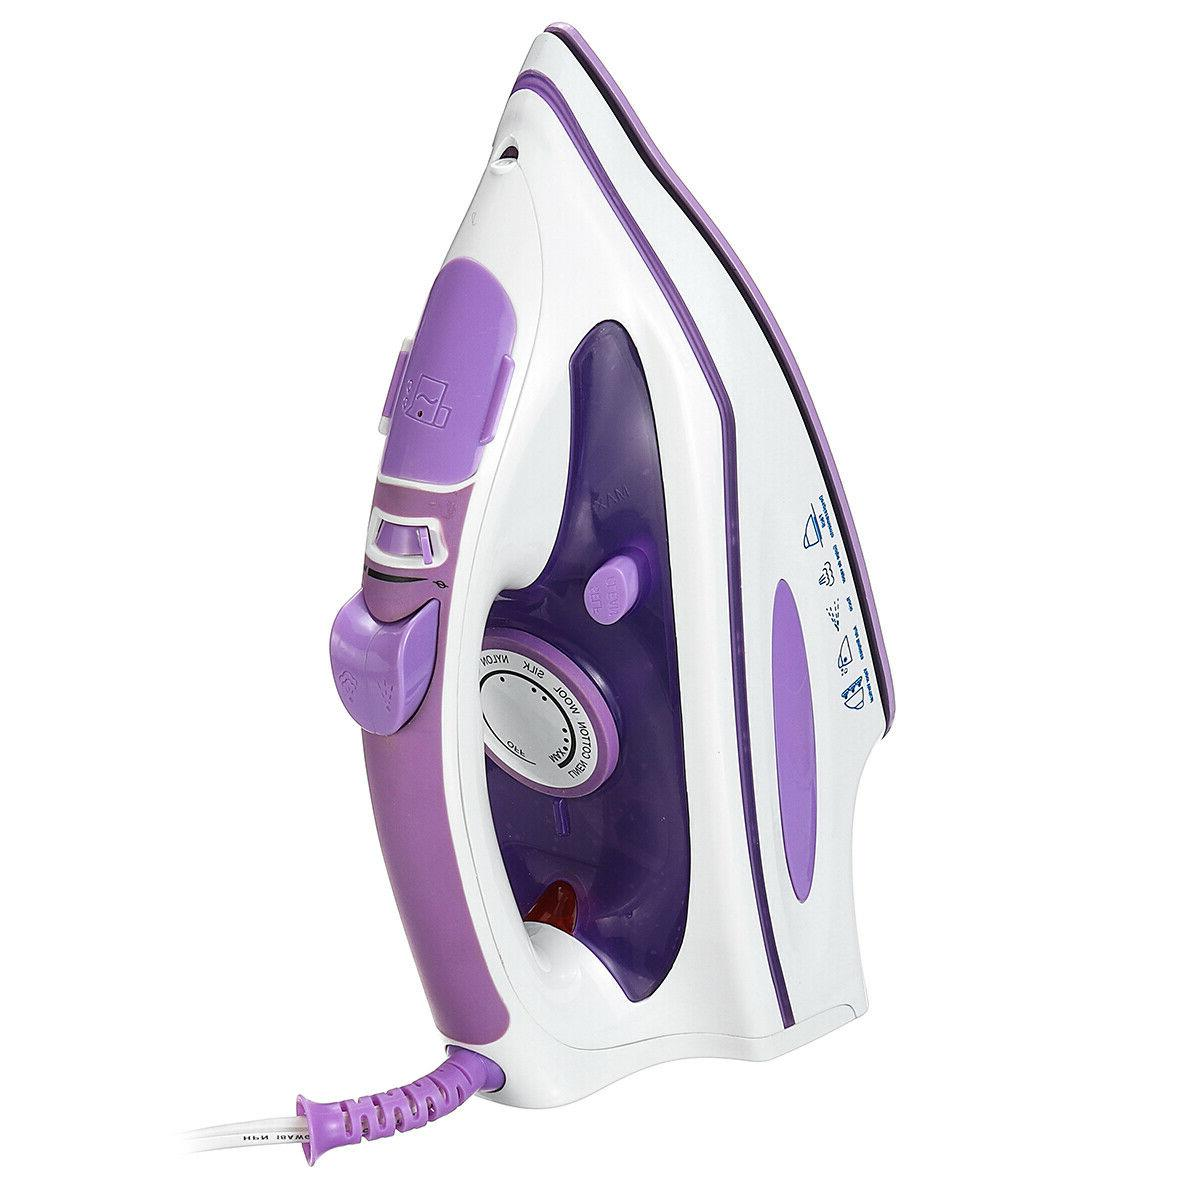 1200W Steam Iron Steamer Clothes Handheld Fabric Home